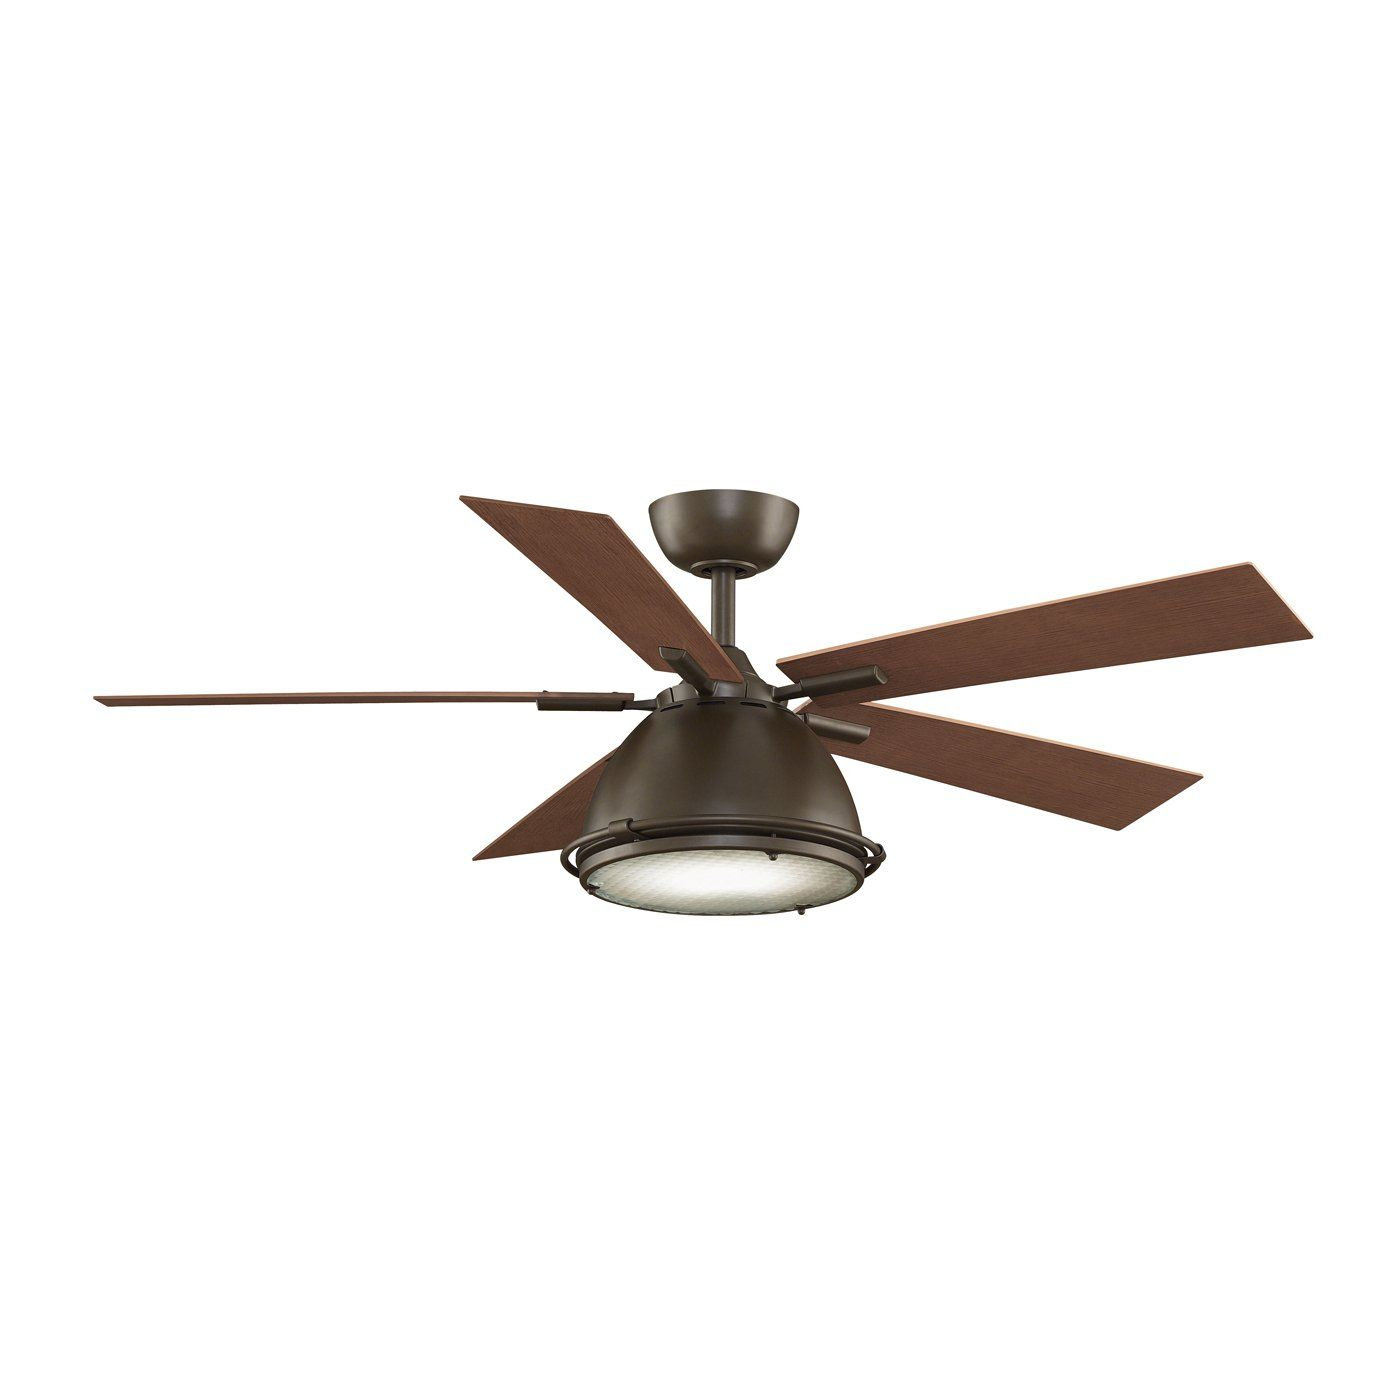 Shop Fanimation FP7951 Breckenfield 52 in Ceiling Fan at The Mine